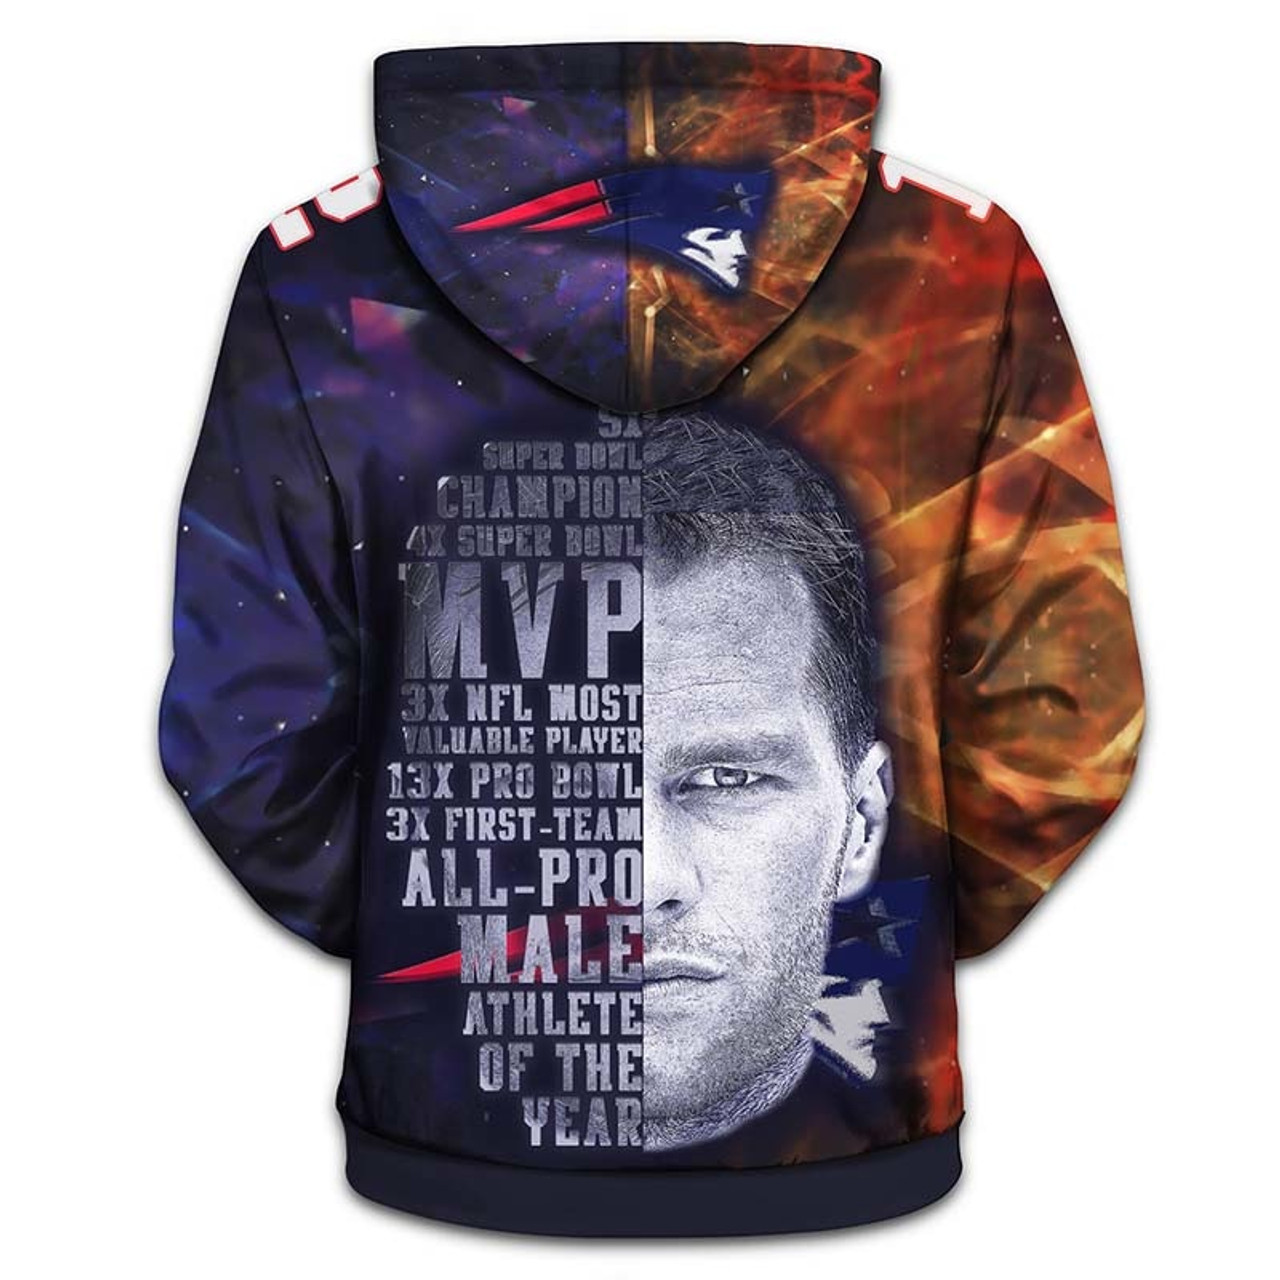 **(OFFICIALLY-LICENSED-N.F.L.NEW-ENGLAND-PATRIOTS-KING-OF-THE-NORTH & TOM-BRADY-NO.12-ZIPPERED-HOODIES/CUSTOM-3D-GRAPHIC-PRINTED-DOUBLE-SIDED-ALL-OVER-GRAPHICS,IN-PATRIOTS-TEAM-COLORS/WARM-PREMIUM-ZIP-UP-FRONT-OFFICIAL-N.F.L.PATRIOTS-TEAM-HOODIES)**